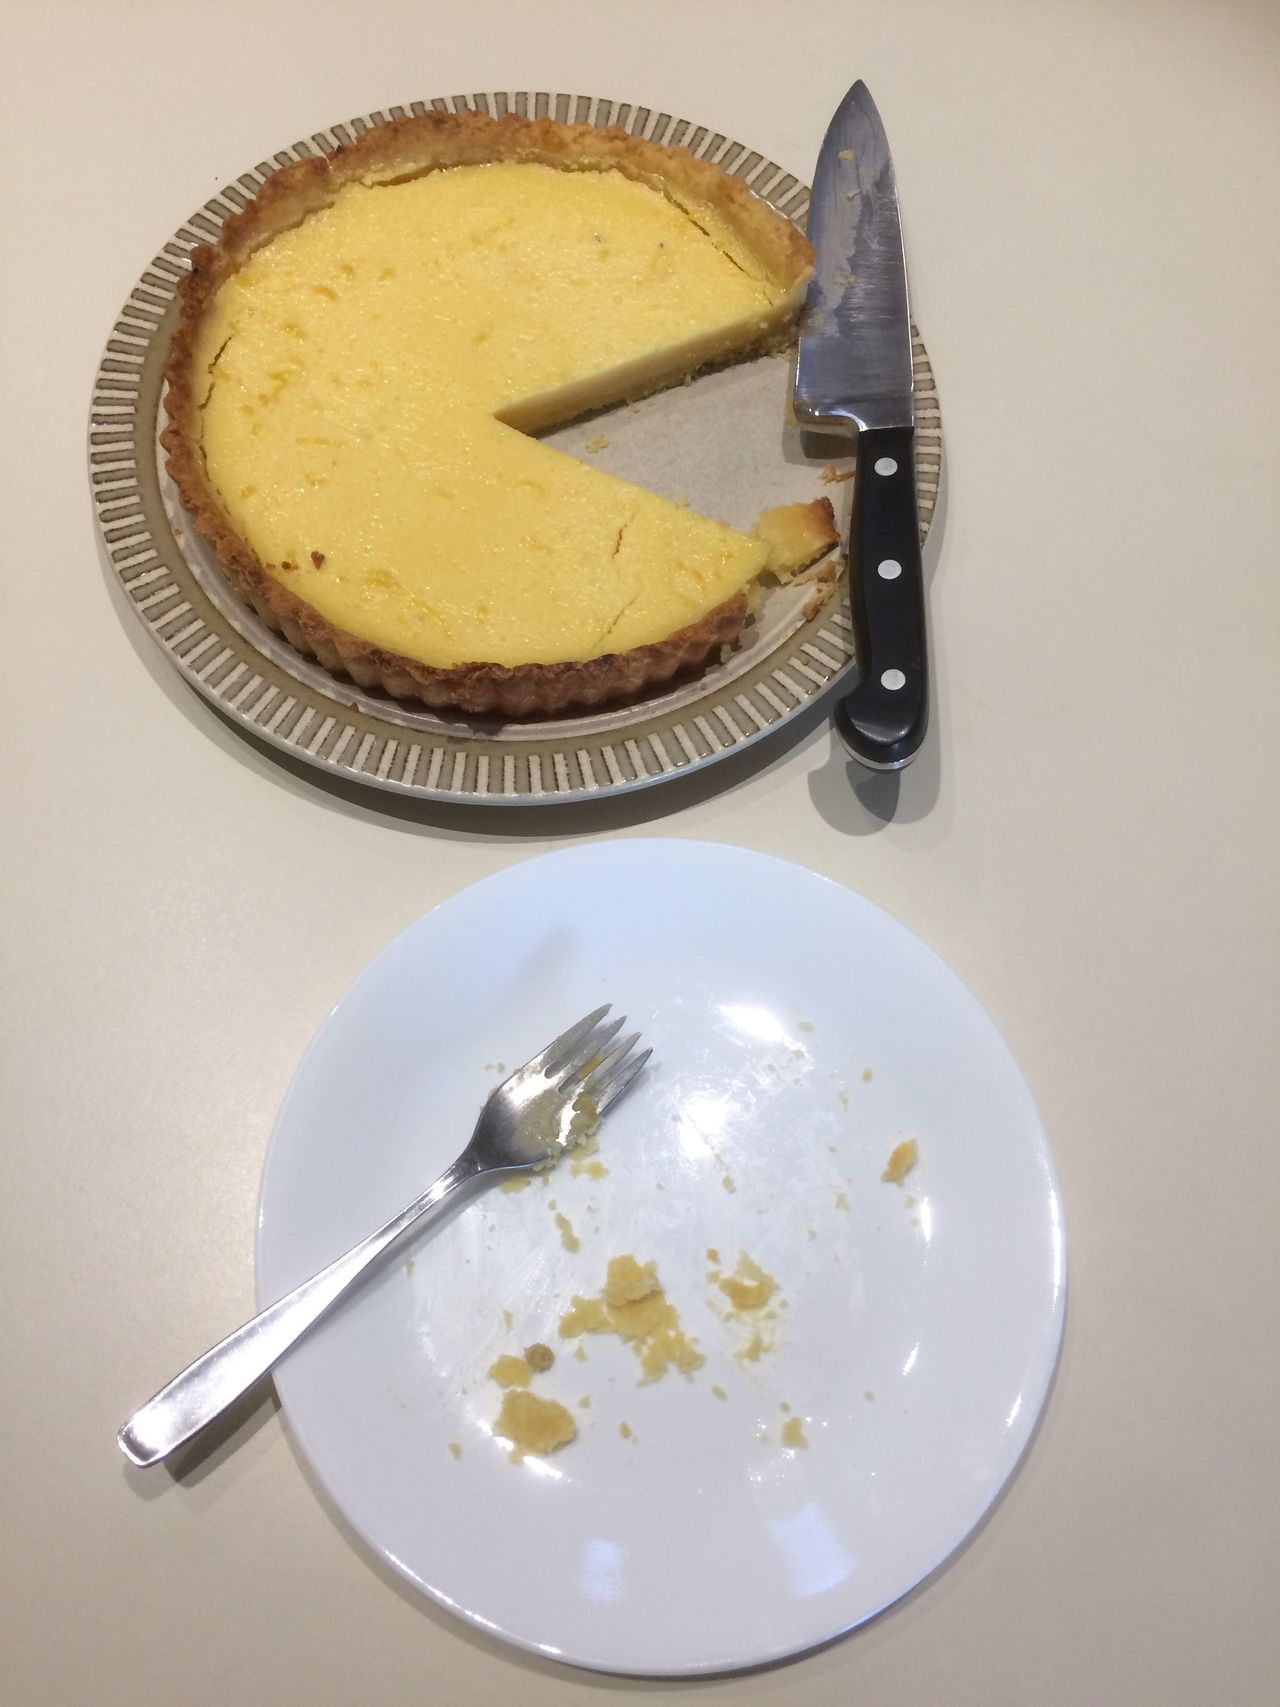 Eaten Lemon Tart Plate Food And Drink Food Table Indoors  High Angle View Fork Directly Above Ready-to-eat No People Cake Freshness Serving Size Healthy Eating Close-up Sweet Food Day